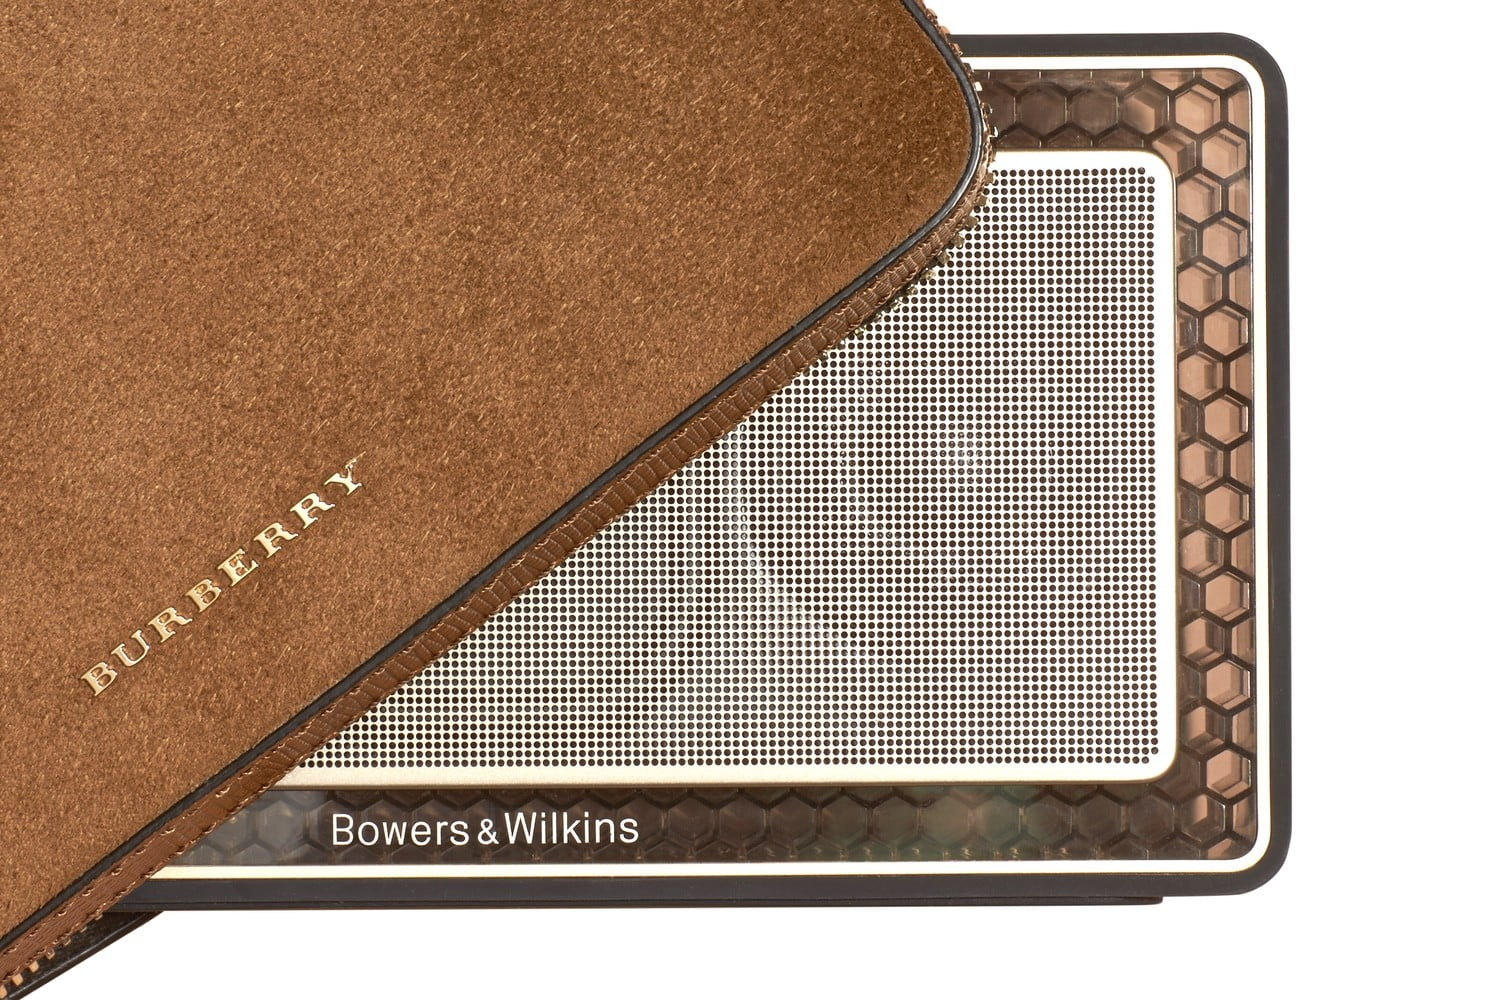 bowers wilkins burberry t7 bluetooth speaker and gold edition 9